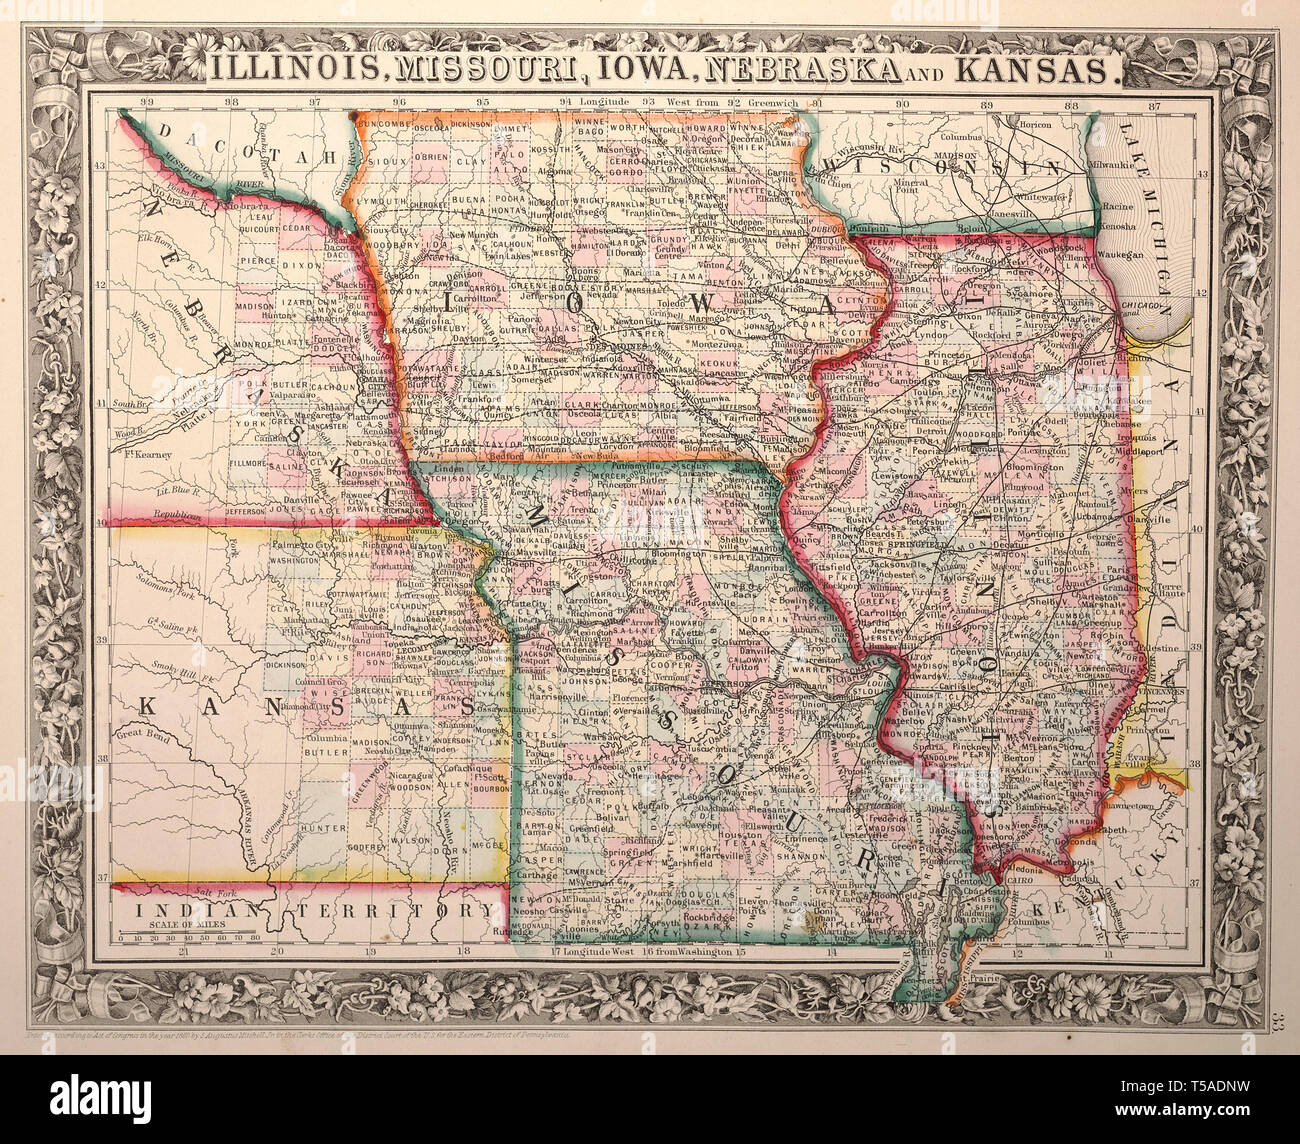 Vintage Illinois Maps Stock Photos & Vintage Illinois Maps ... on